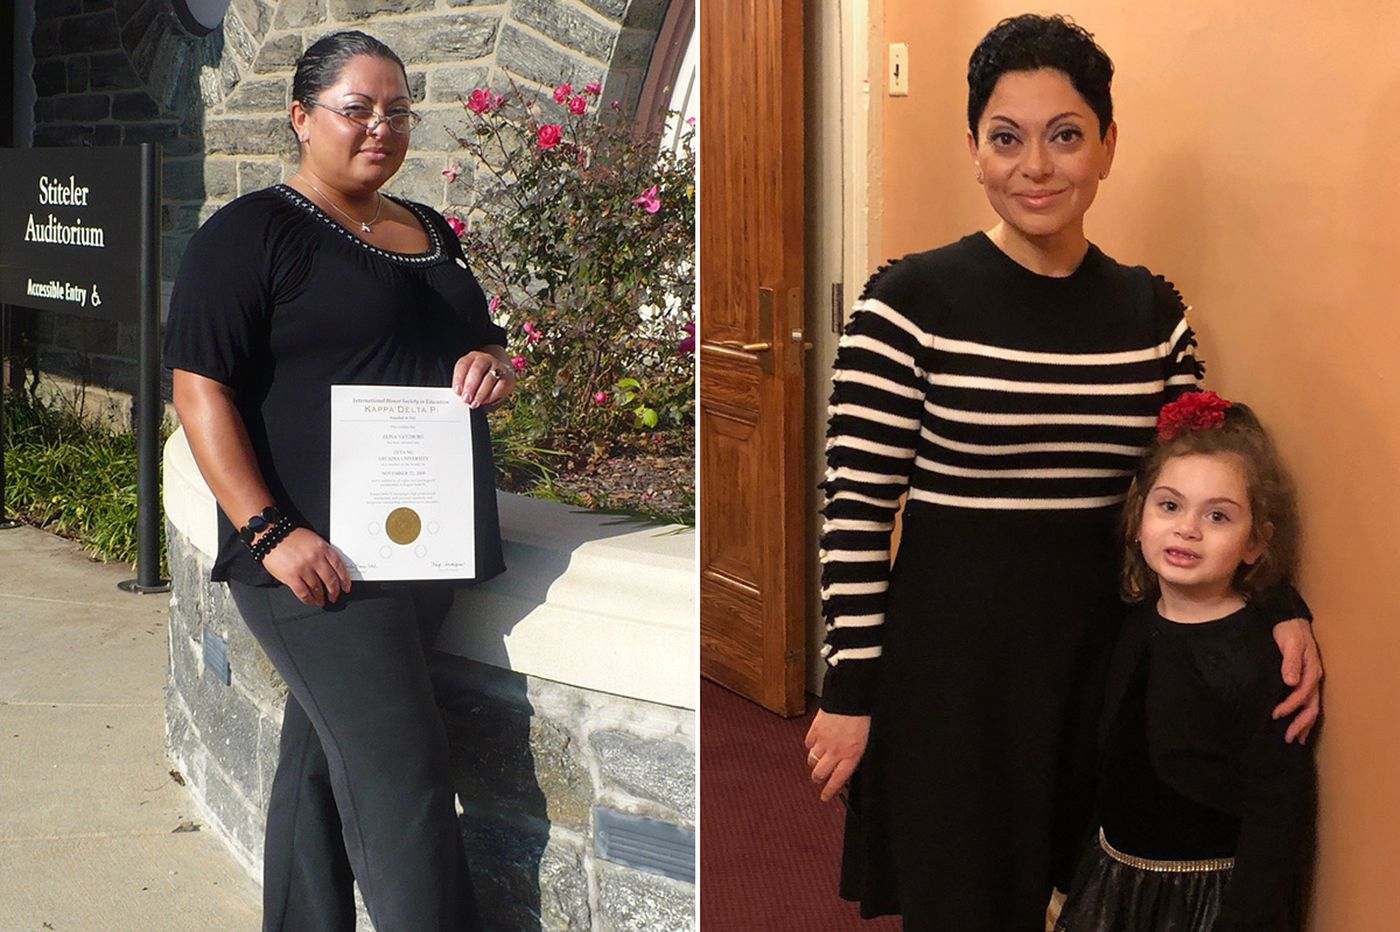 She lost 100 pounds and reversed her type 2 diabetes. It's difficult, but possible